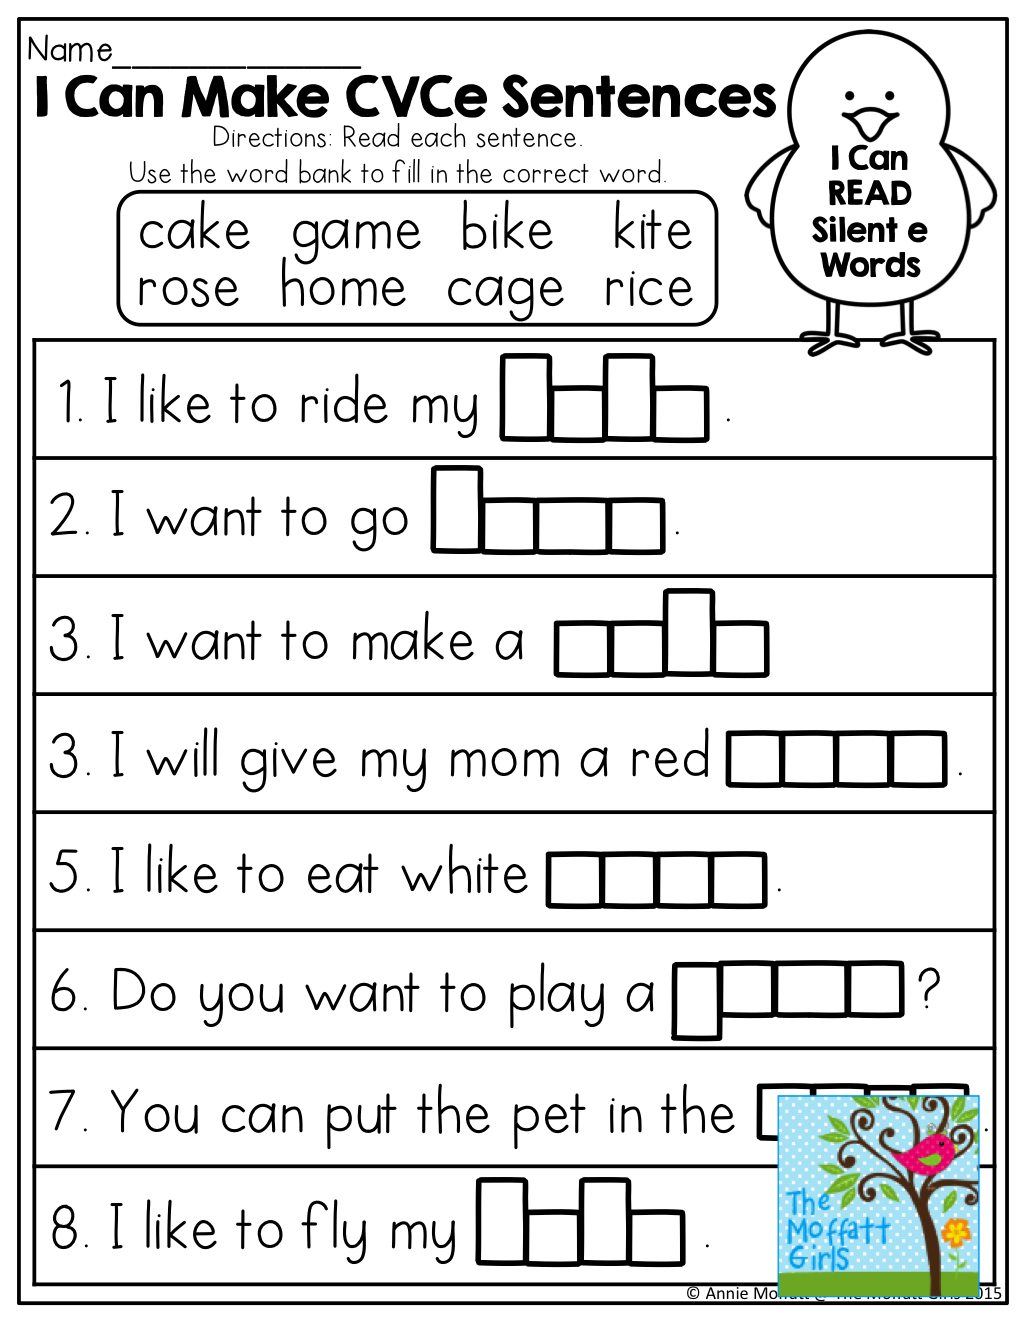 Cloze Sentence Worksheets Free   Printable Worksheets and Activities for  Teachers [ 1325 x 1024 Pixel ]